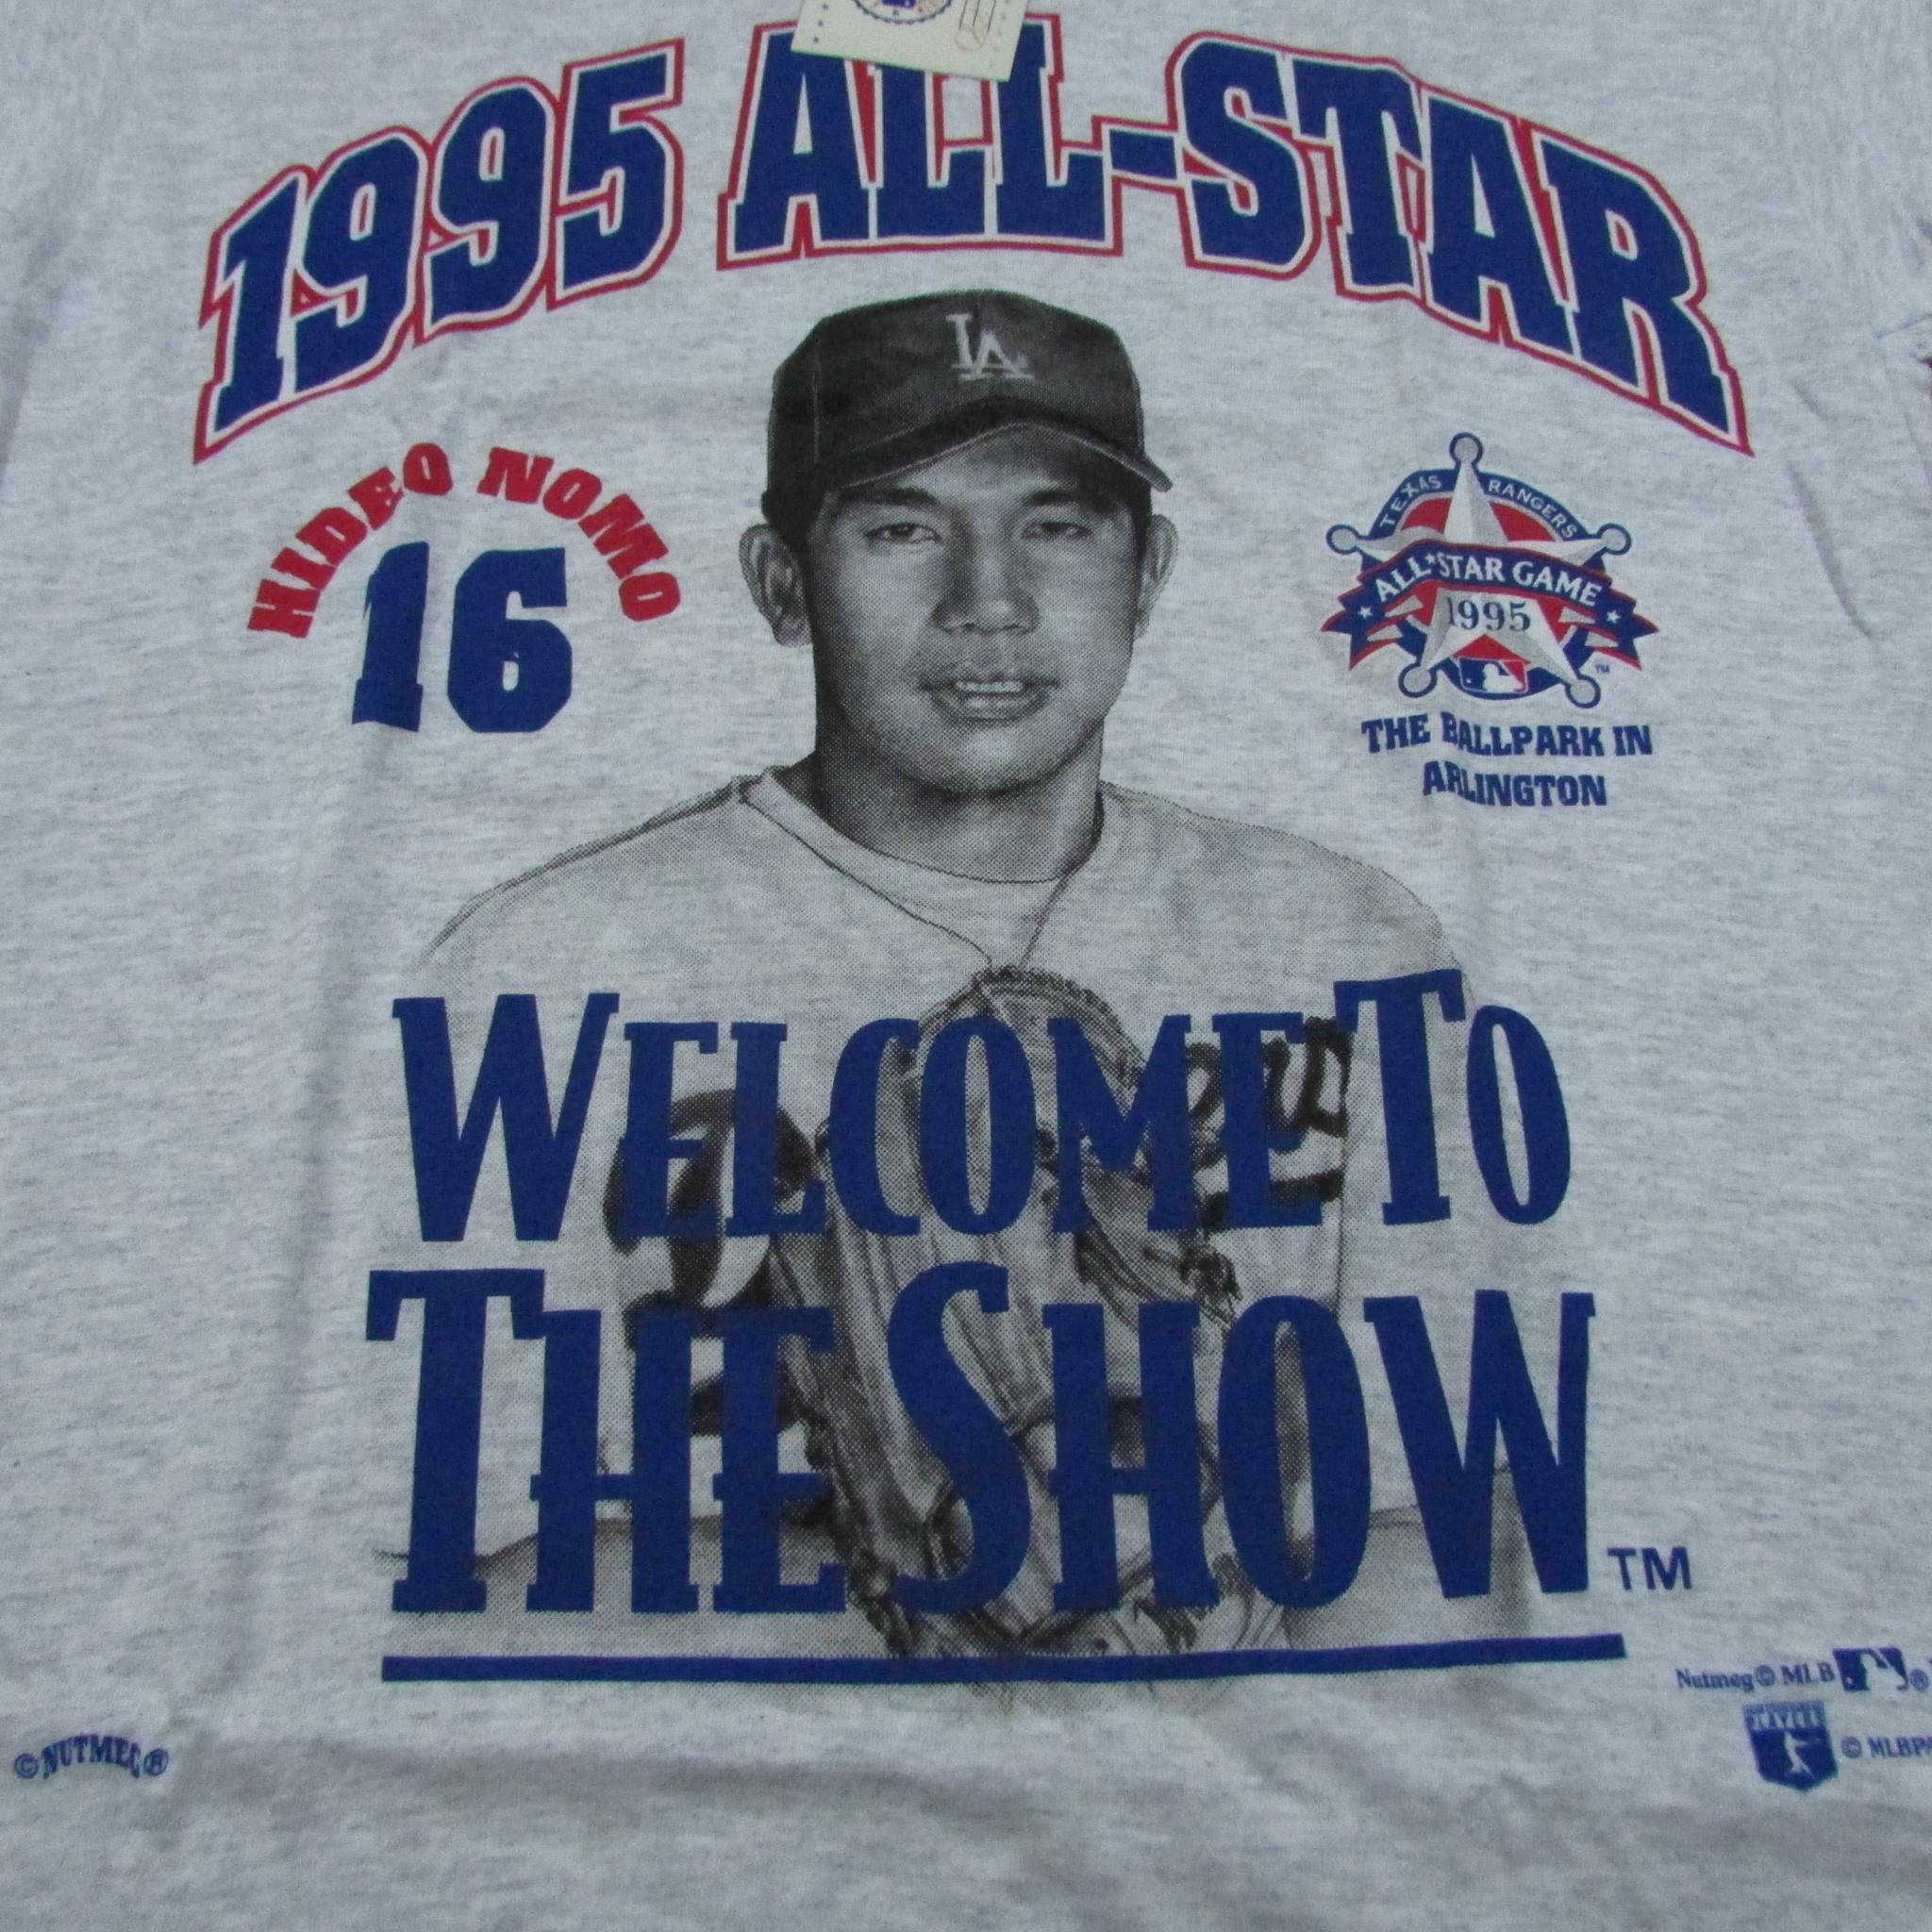 1995 Baseball All-Star Hideo Nomo Los Angeles Dodgers Deadstock T-Shirt NUTMEG MILLS Sz L